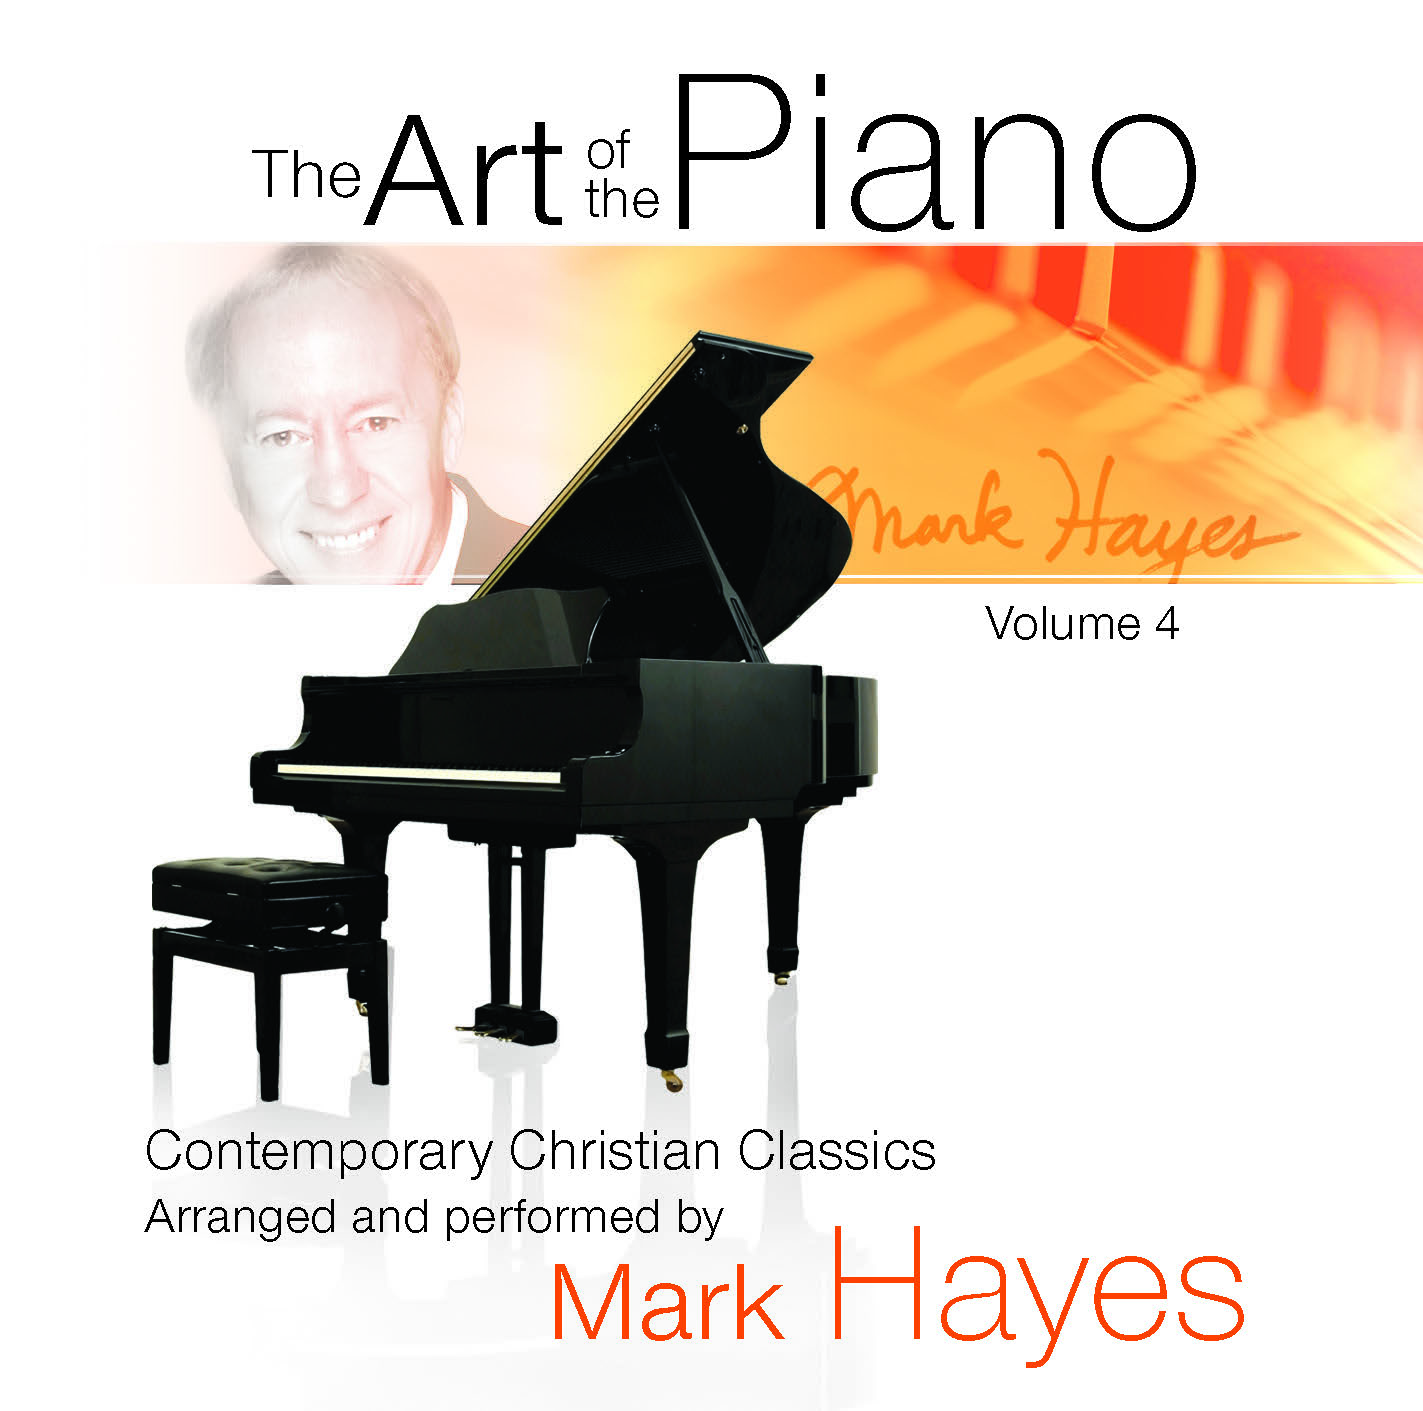 The Art of the Piano, Vol. 4 - Listening CD